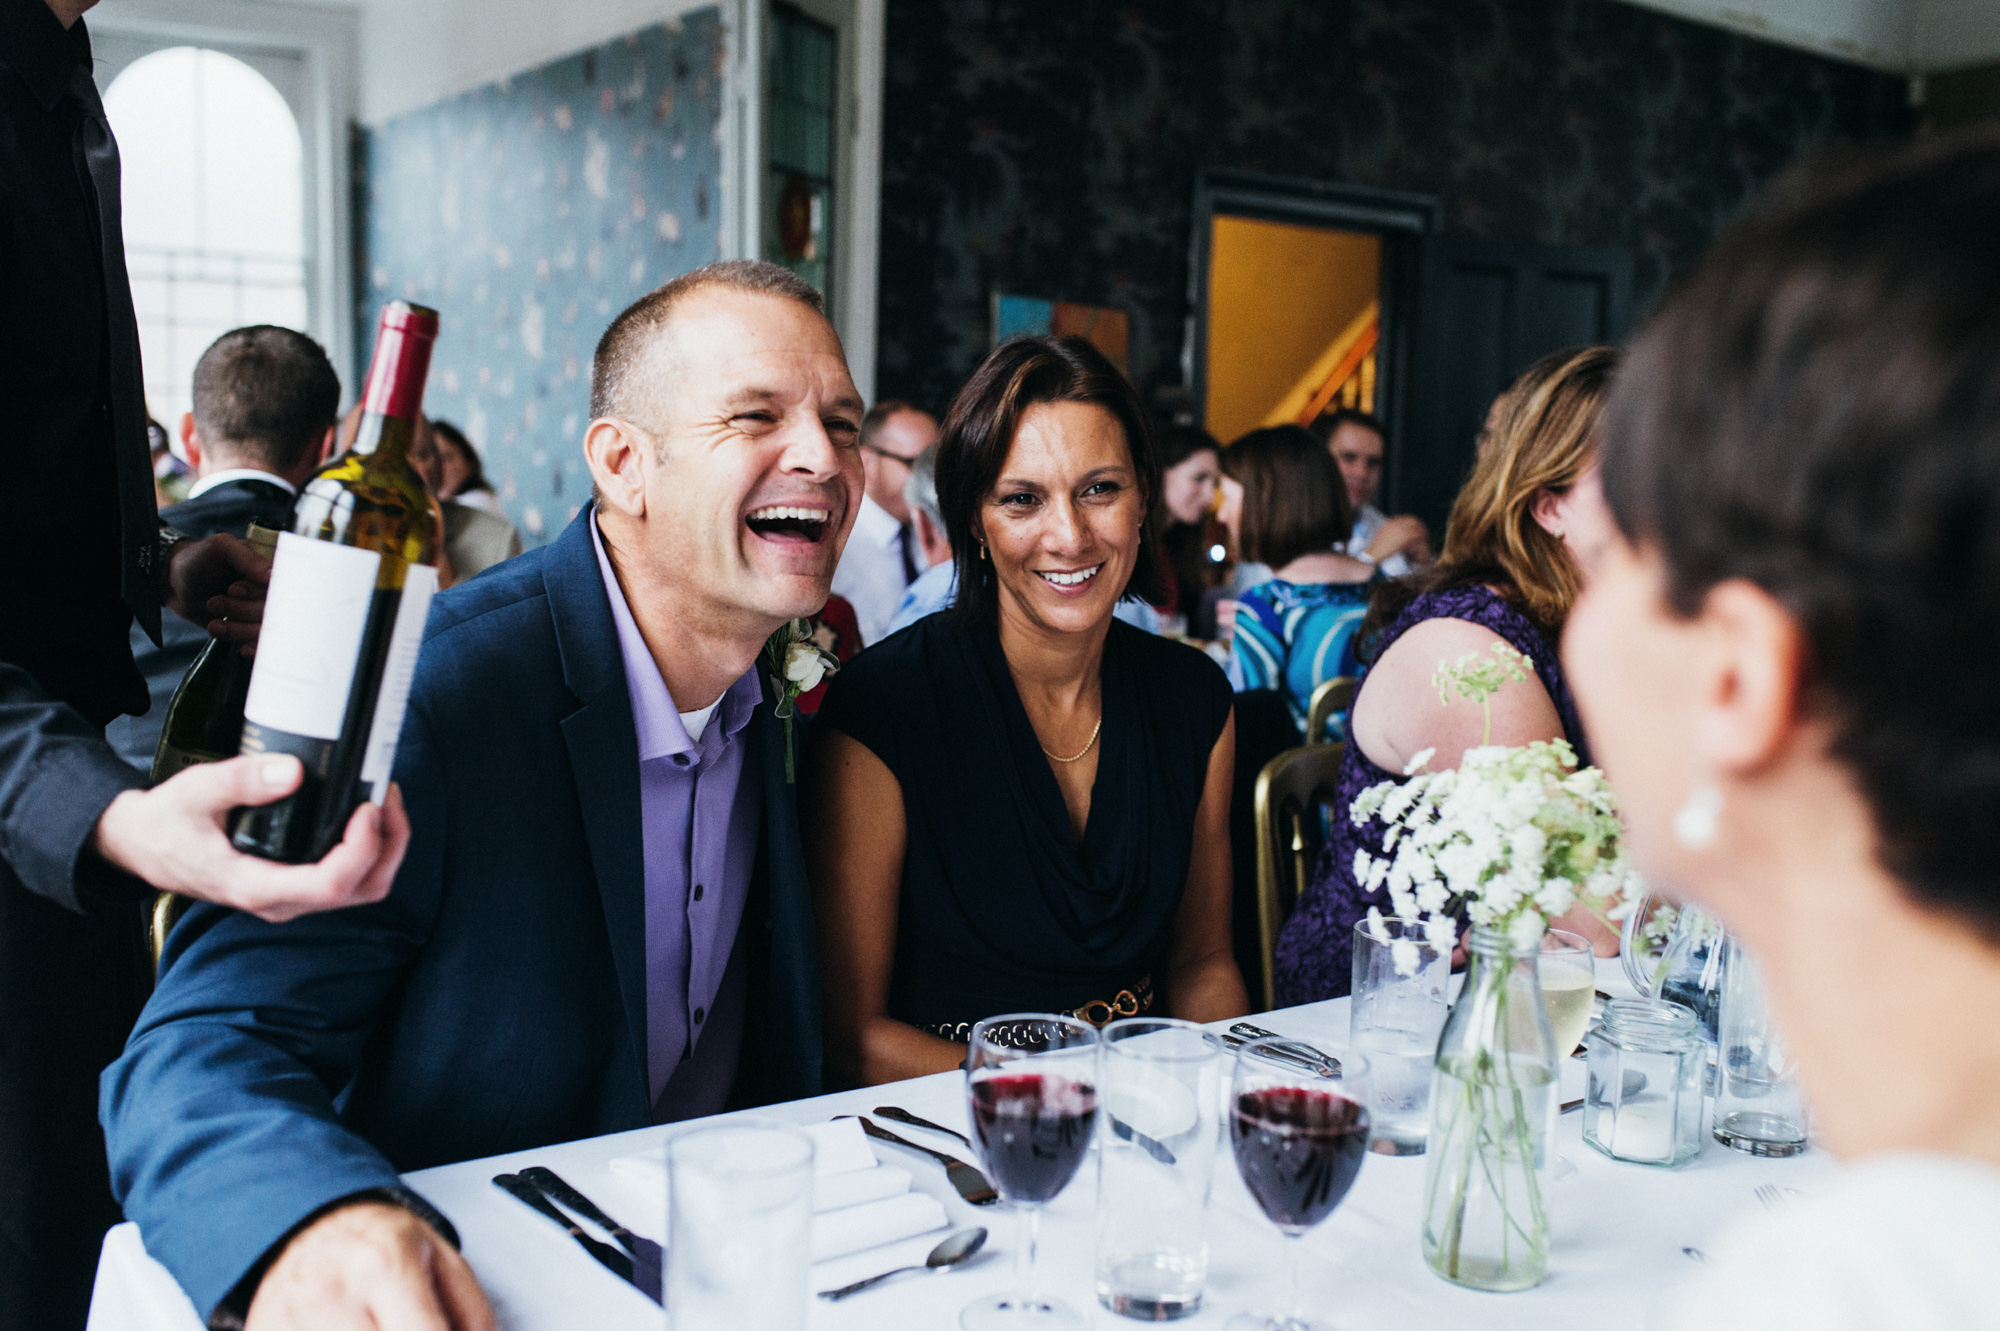 Laughing and wine - quirky creative gay friendly wedding photographer The Roost Dalston London wedding photographer © Babb Photo